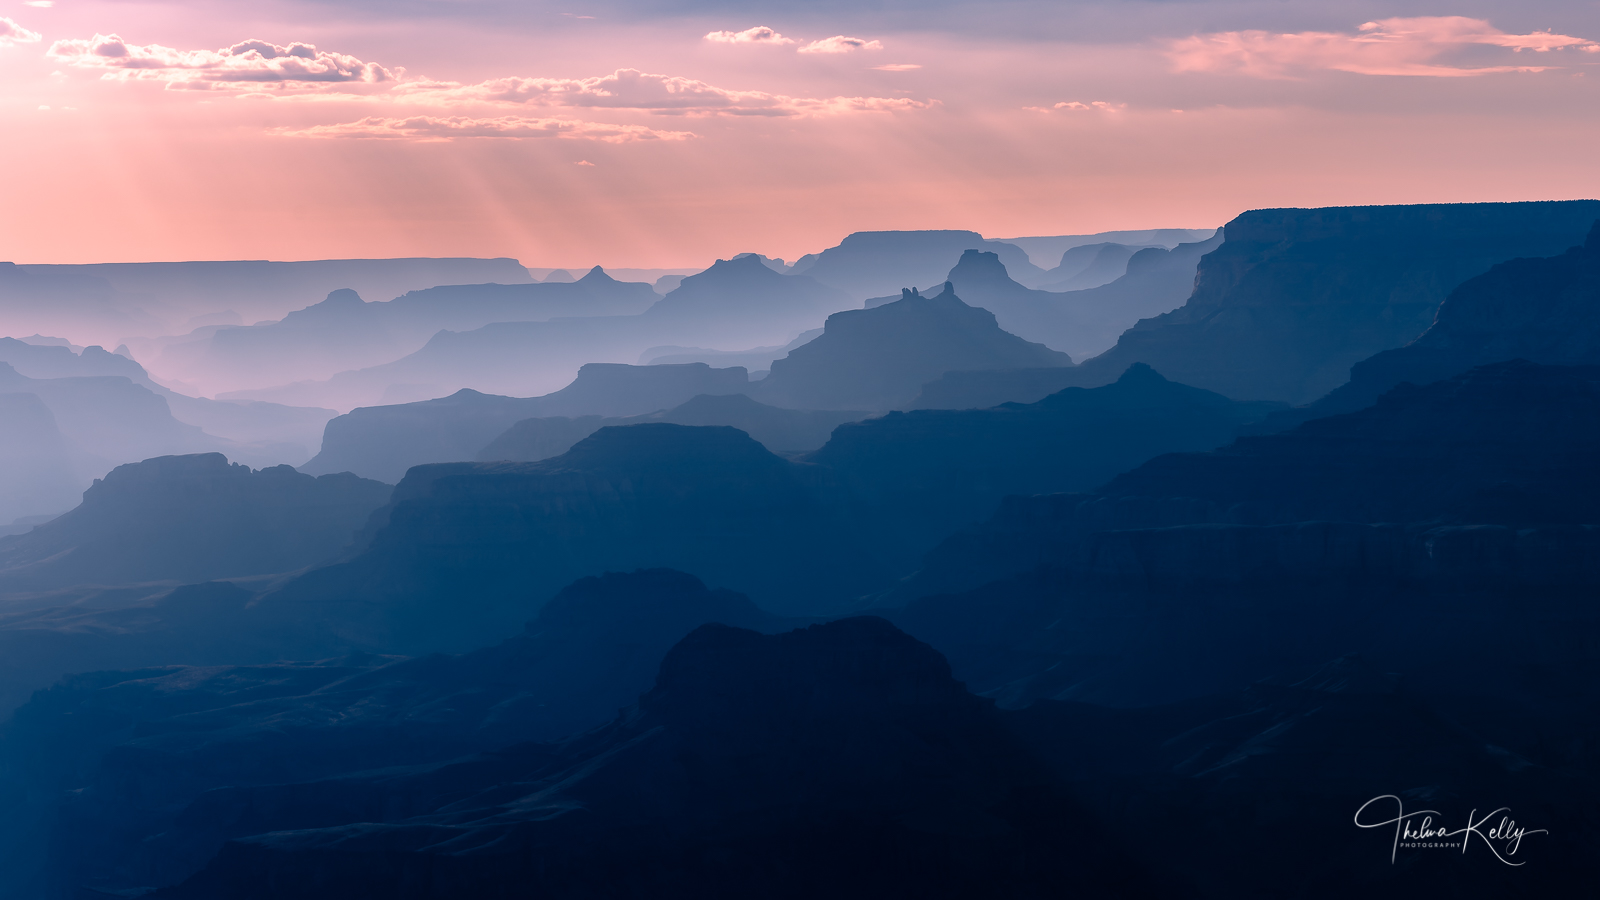 A Limited Edition of 50 Making the most out of smoke filled skies at the Grand Canyon's South Rim